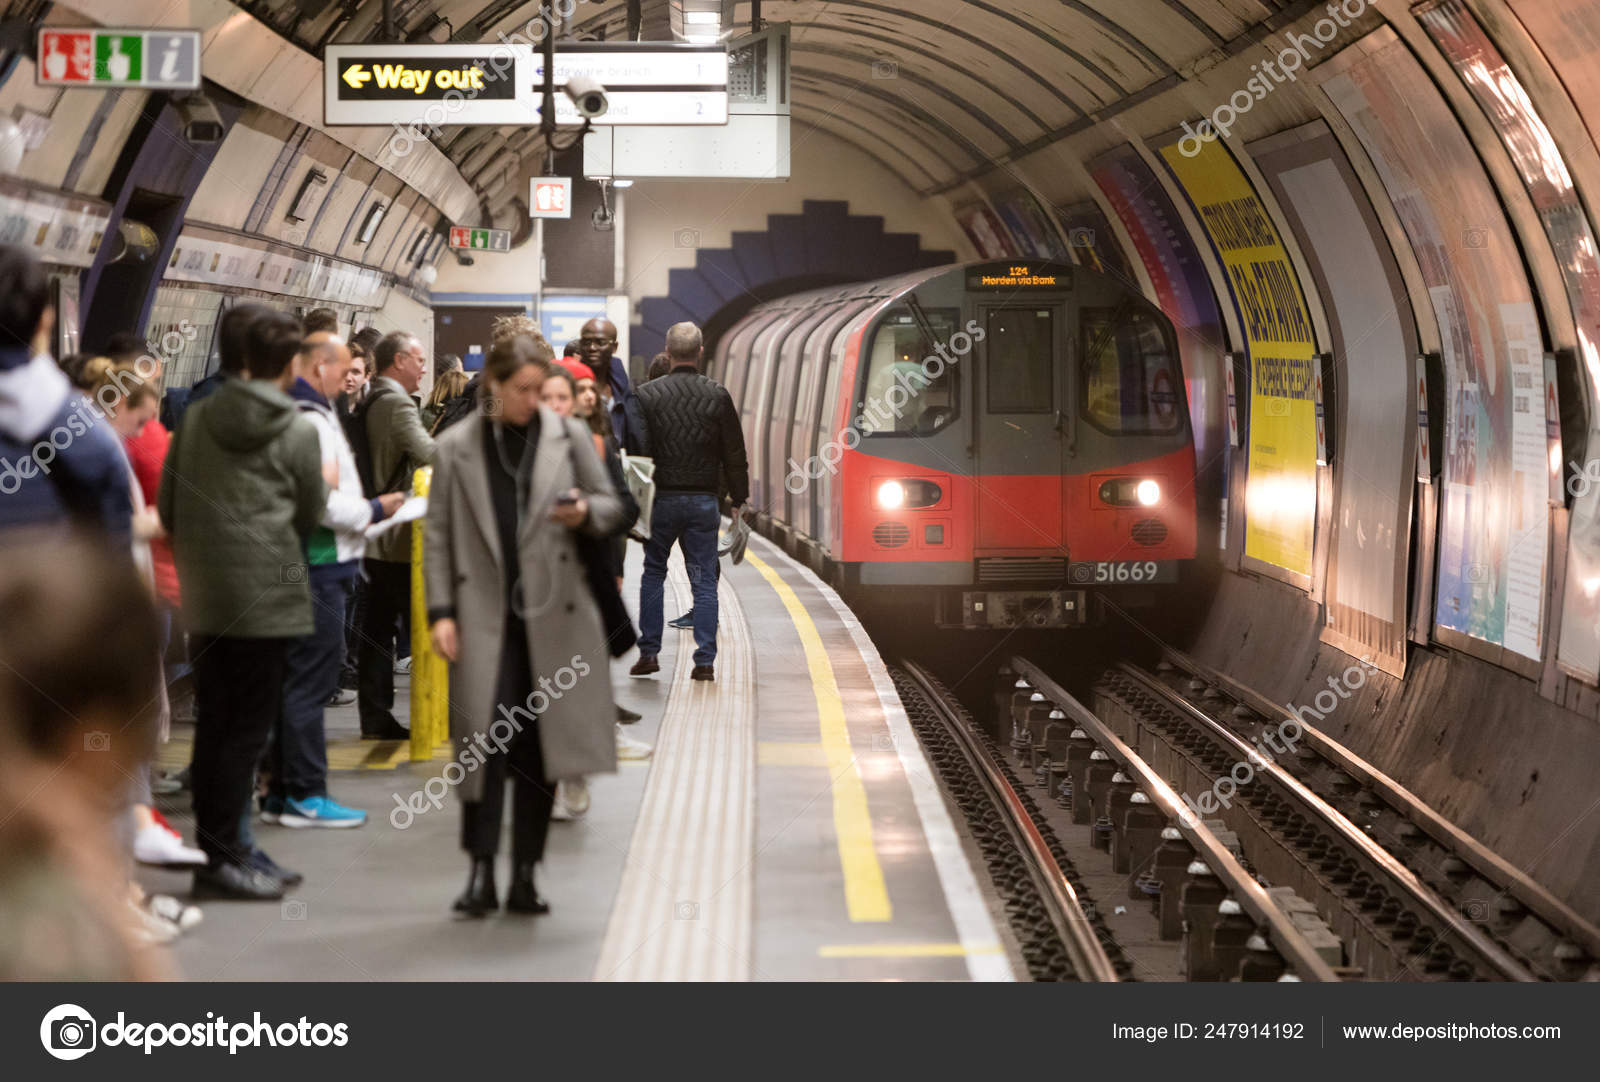 LONDON - MAY 15: Travelers hurry at an underground station